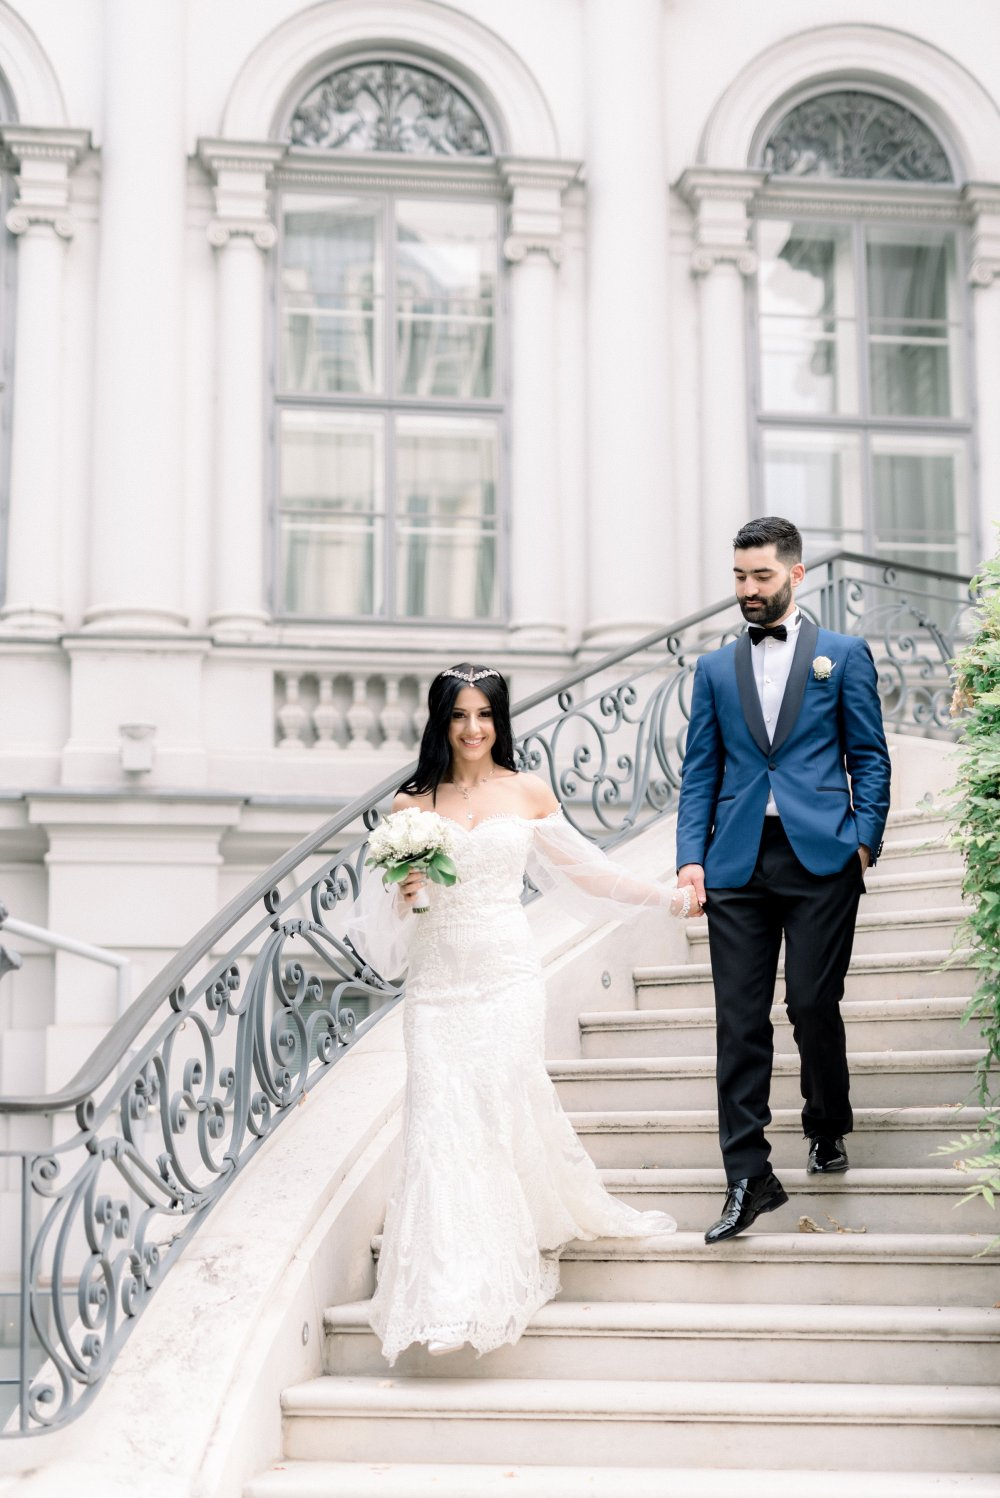 luxury wedding vienna austria palais coburg couple on stairs outside